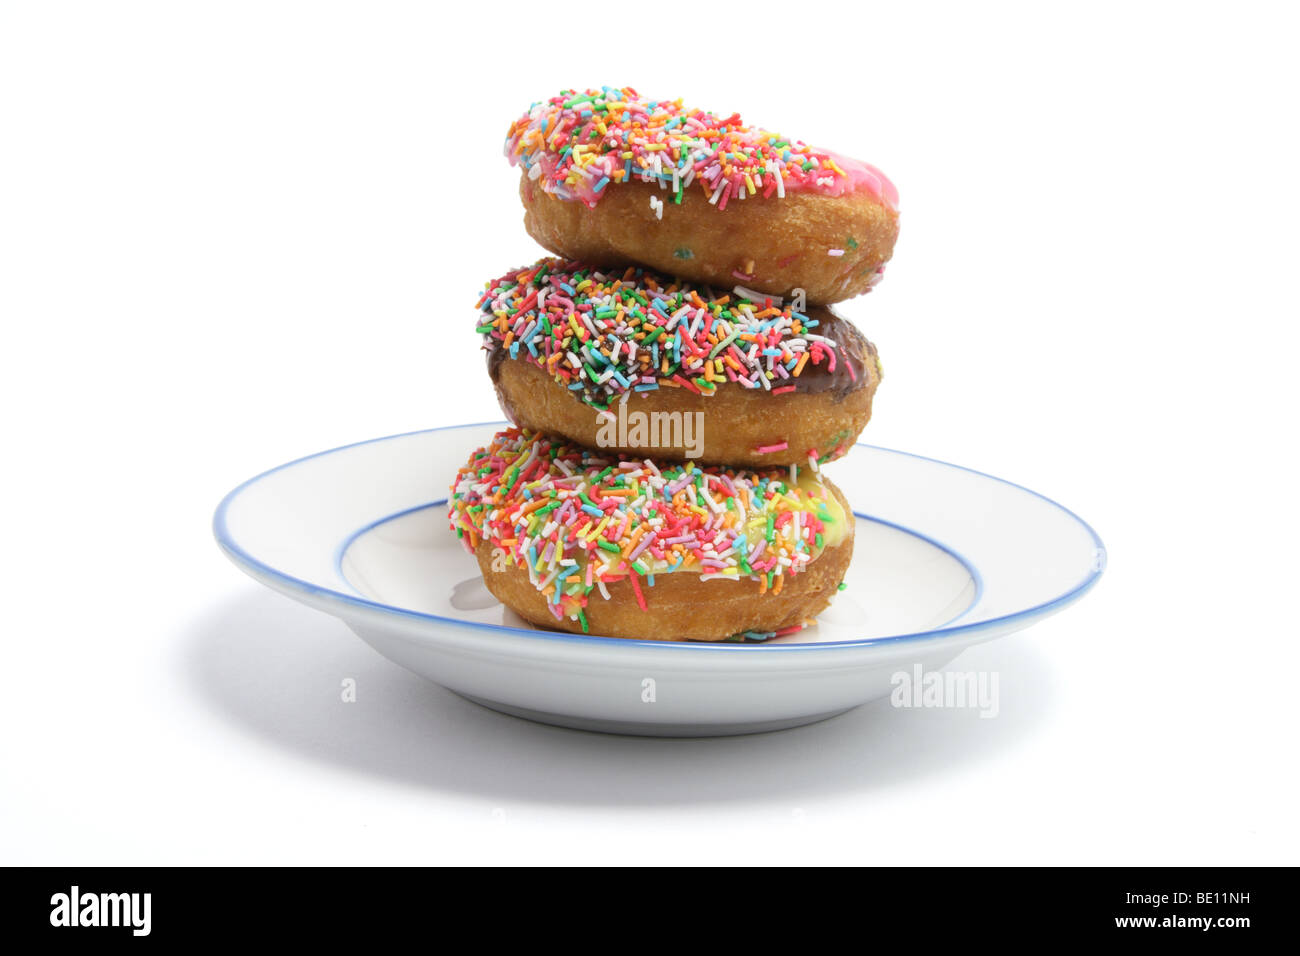 Doughnuts on a Plate - Stock Image